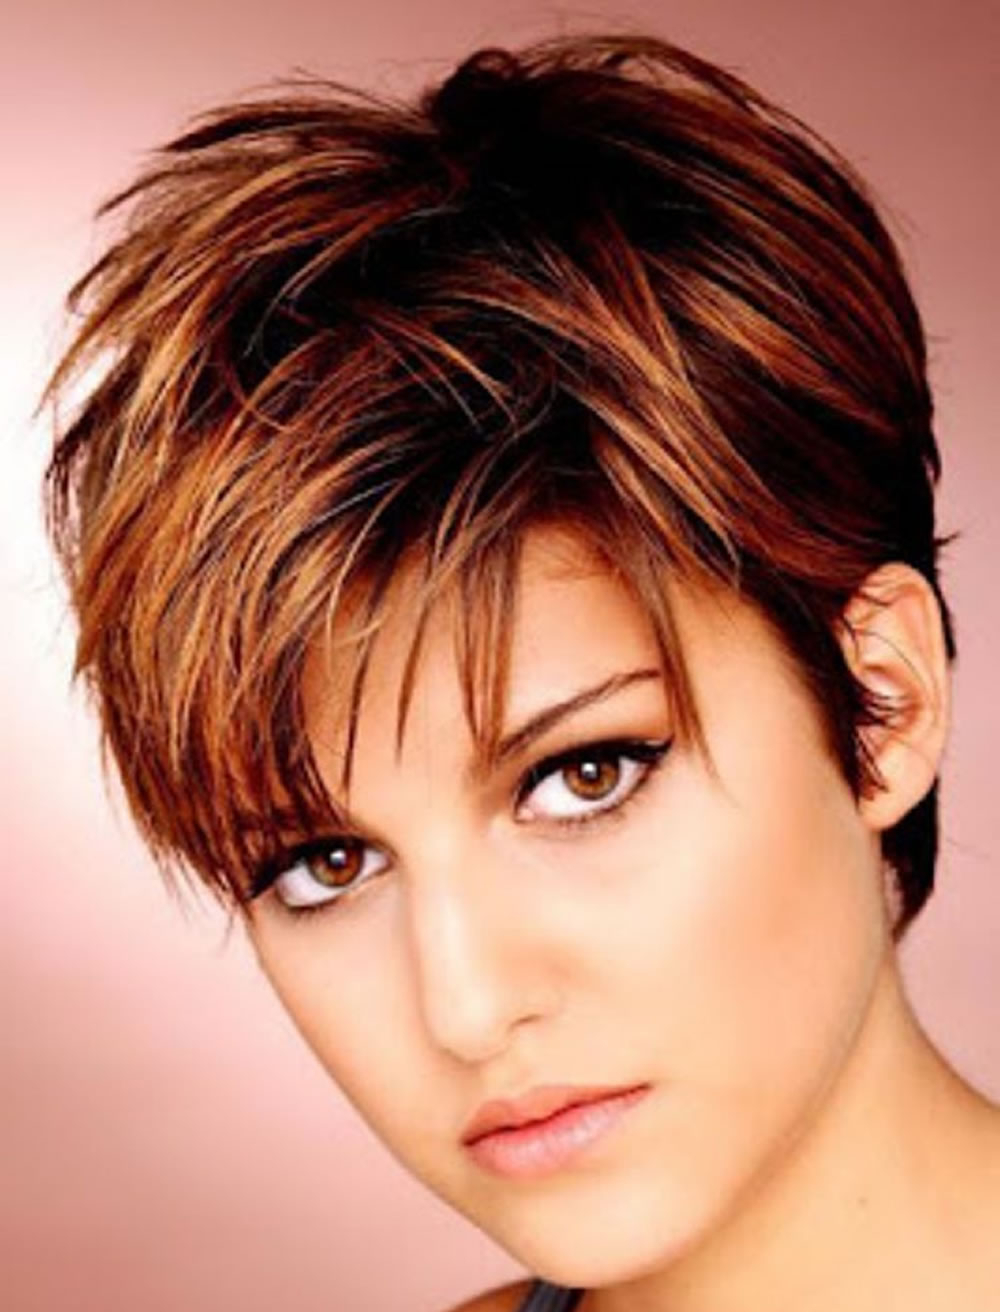 Short Haircuts For Round Face Thin Hair Ideas For 2018 – Hairstyles Pertaining To Medium Short Haircuts For Round Faces (View 22 of 25)